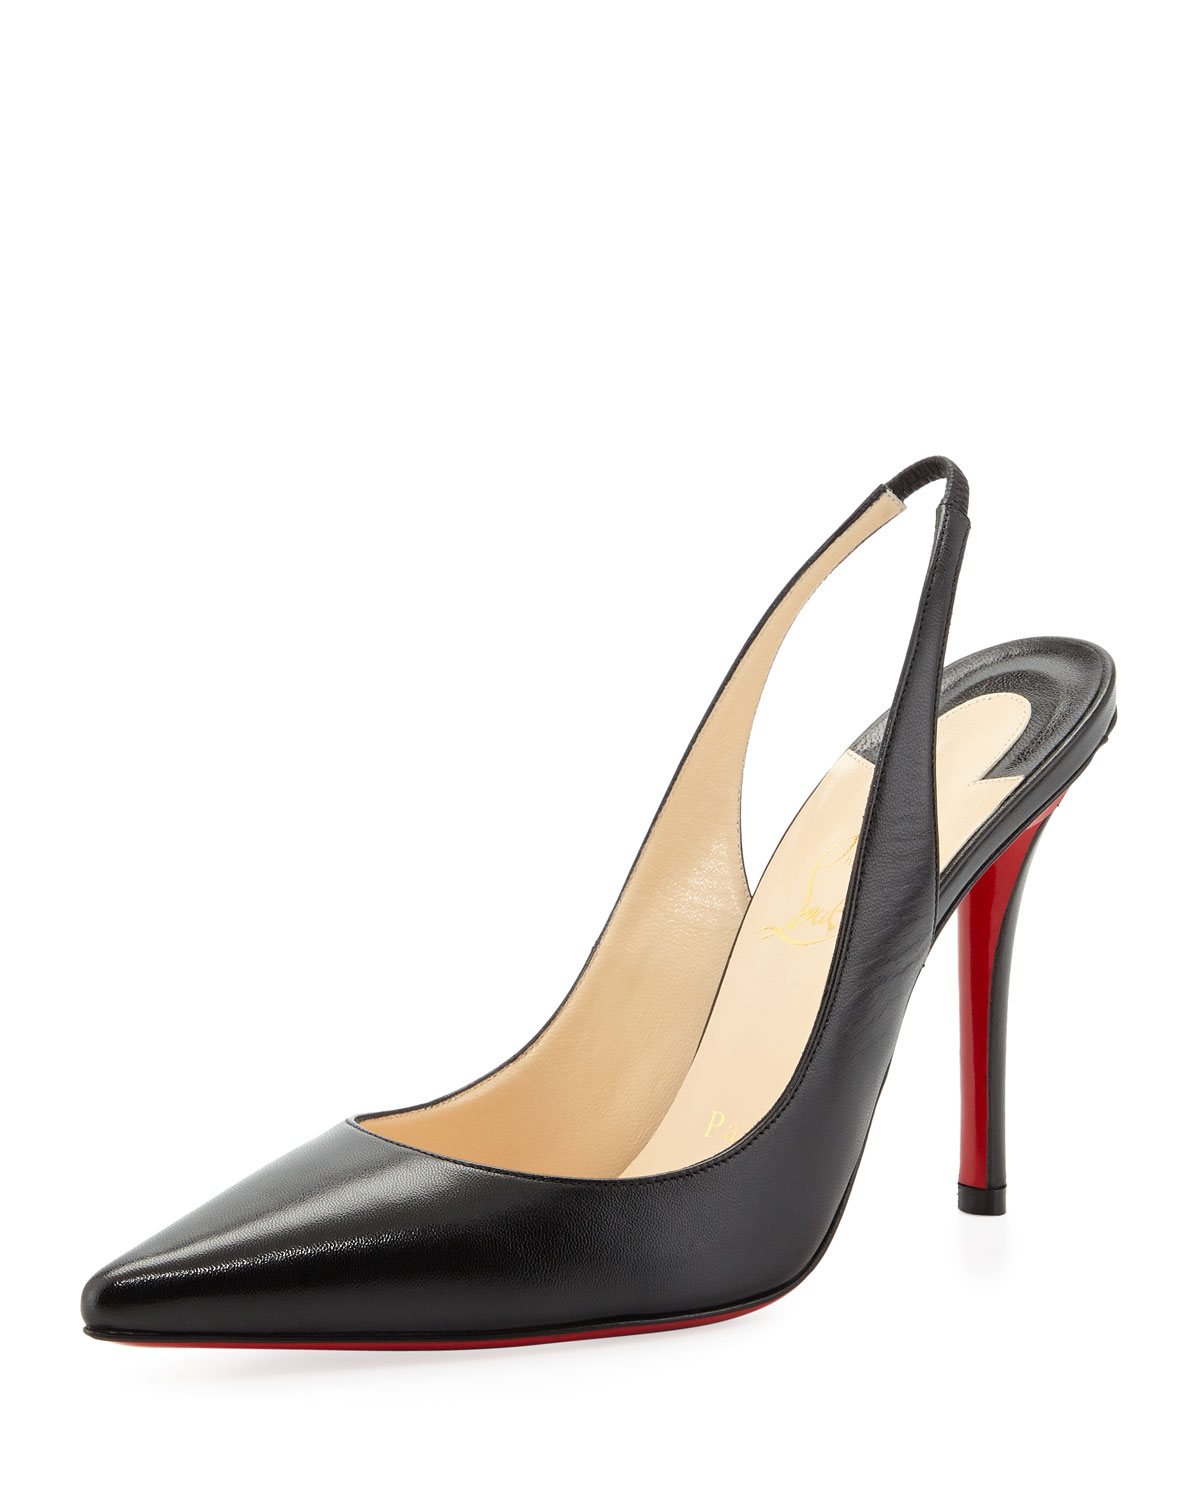 Christian Louboutin Apostrophe Red-Sole Slingback Pump, Black